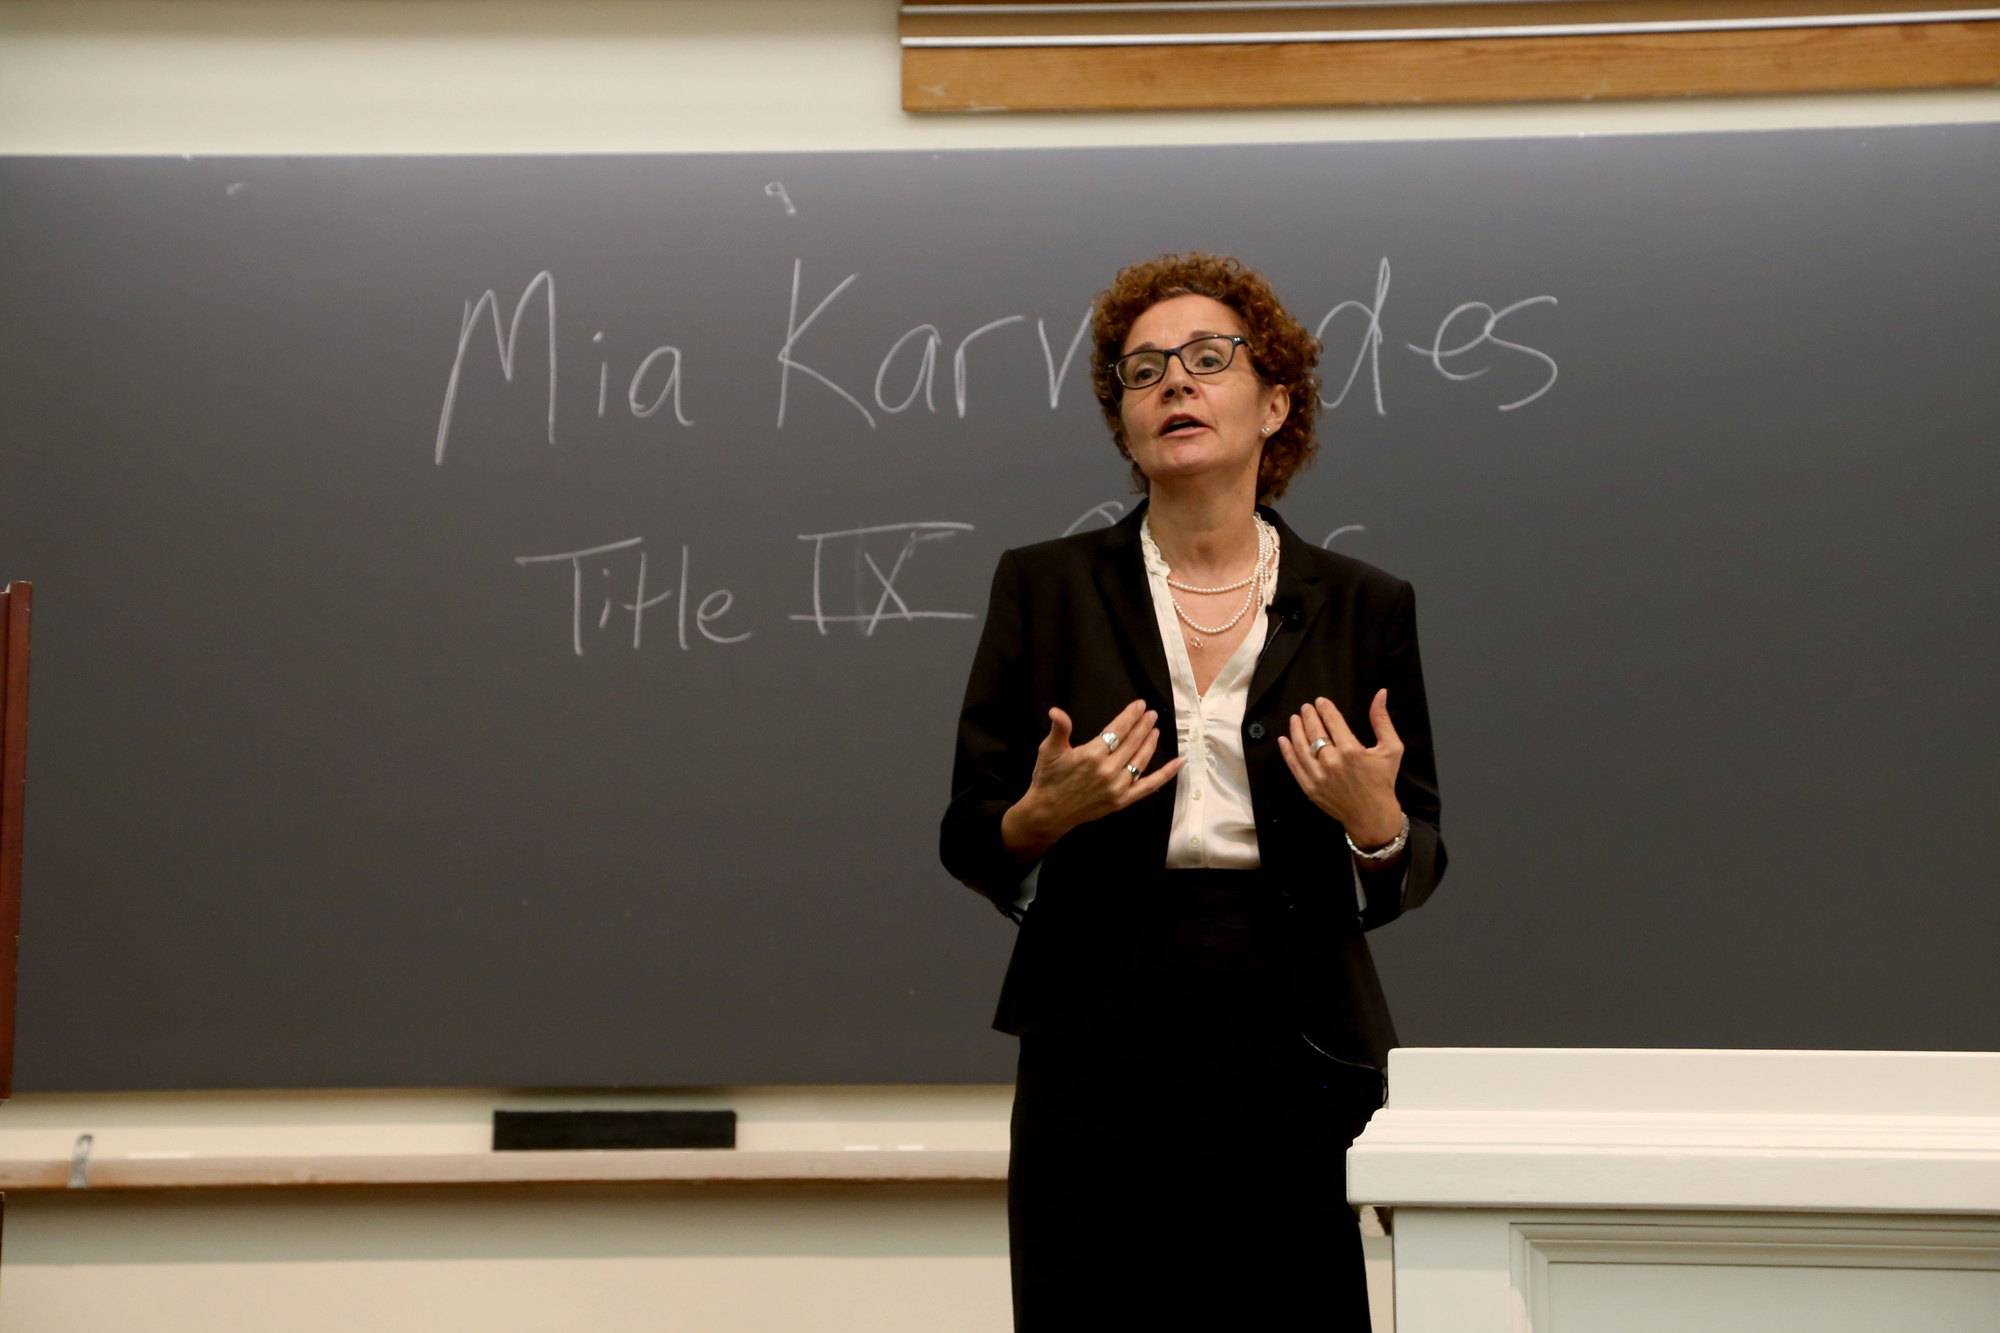 Mia Karvonides, Harvard's Title IX officer, speaks about Harvard's new sexual harassment policy and procedure. The community discussion, held in Emerson Hall, was the first in a series of meetings on the new policy open to Harvard affiliates.